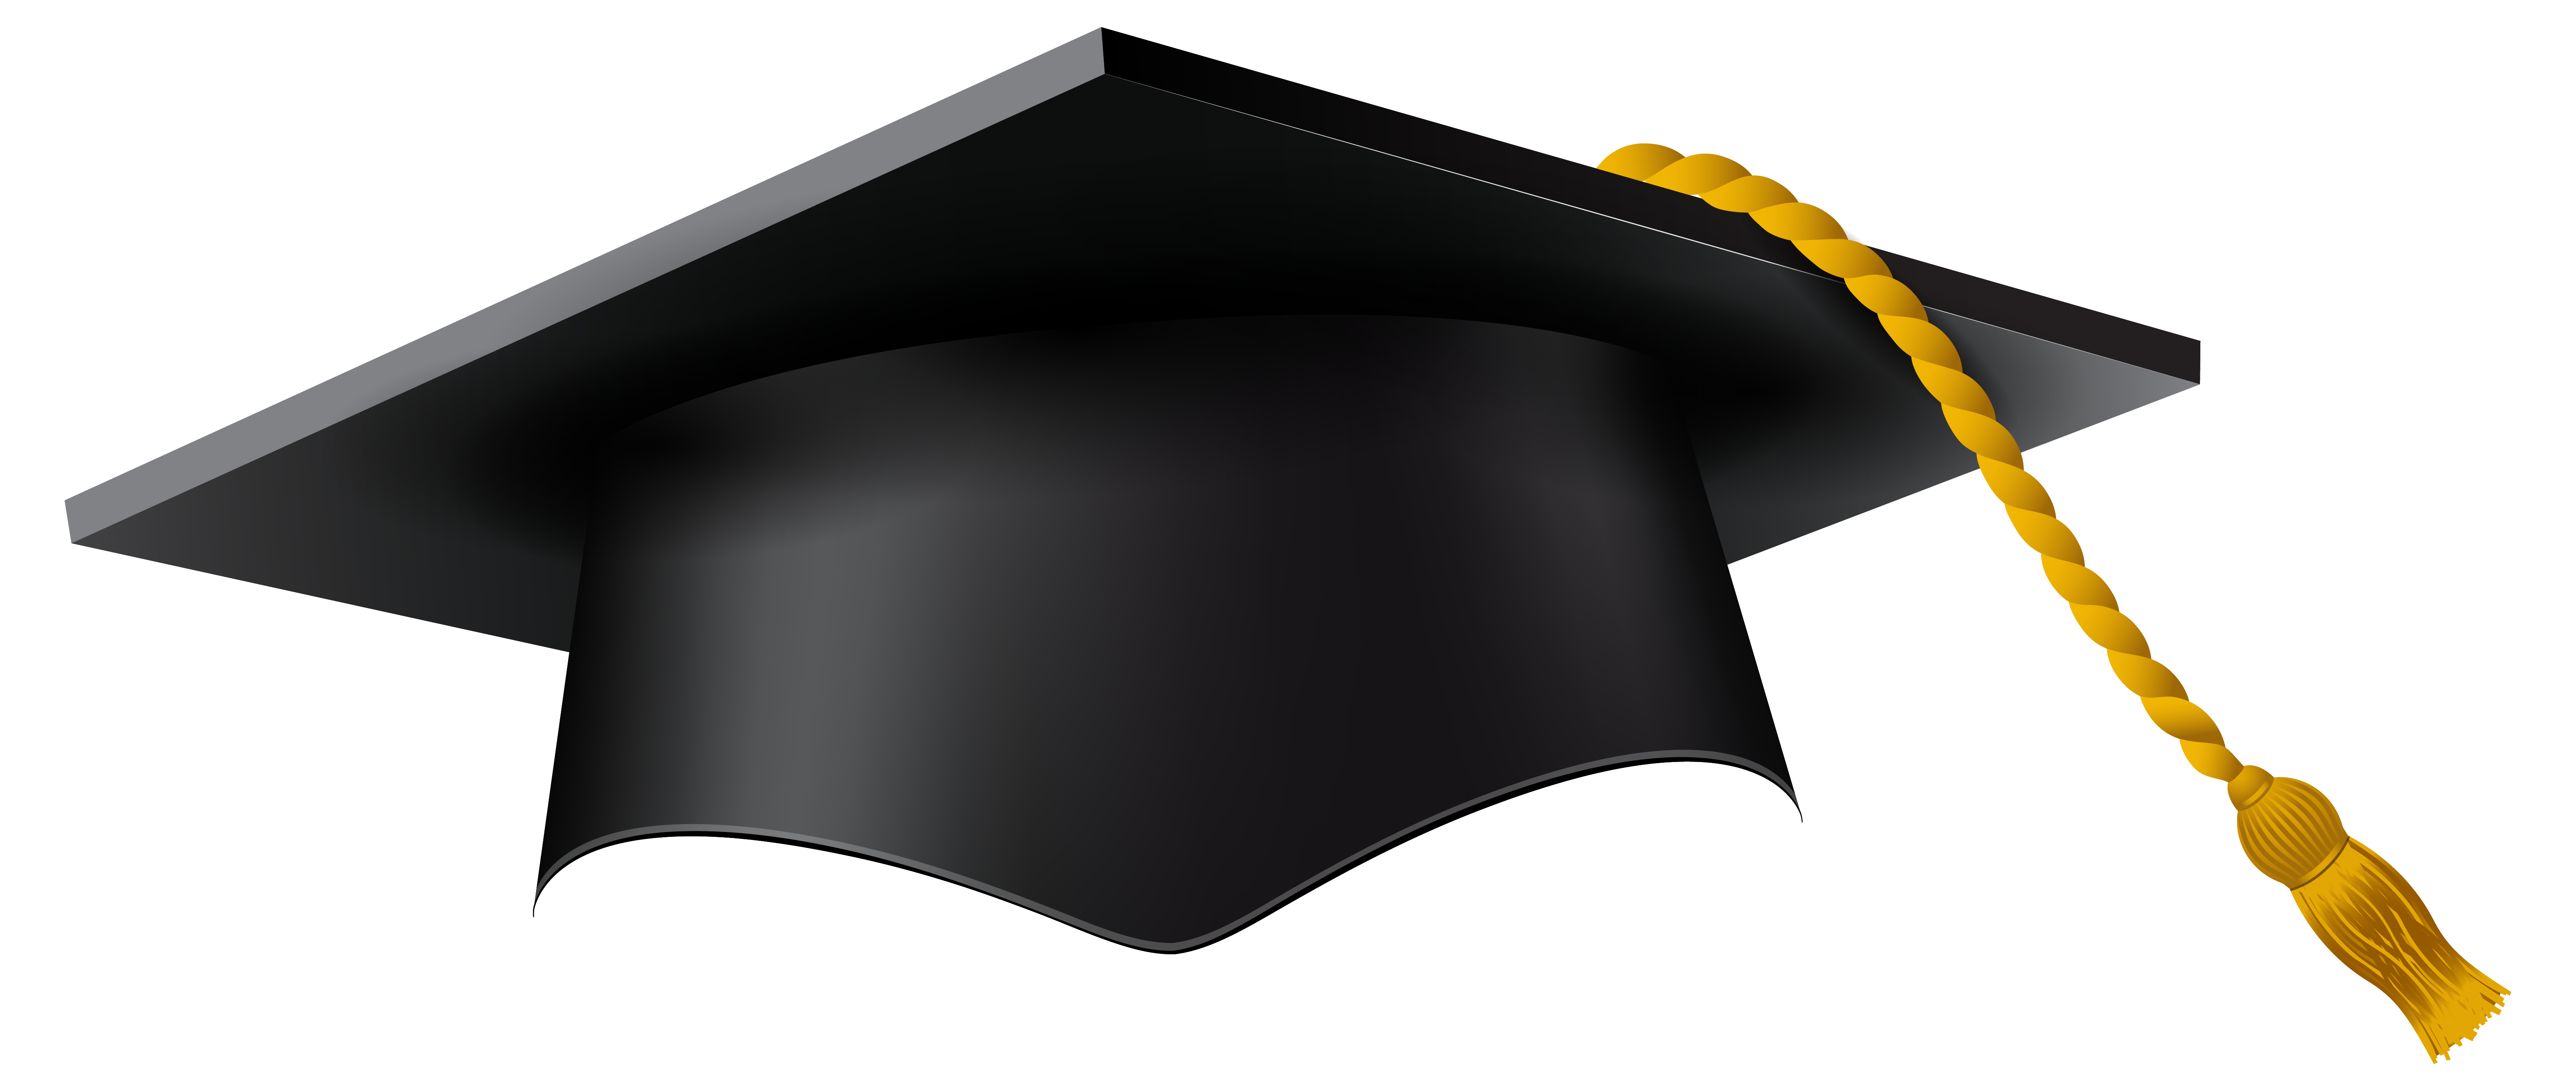 Graduation Cap Png Image Gallery Yopriceville High Quality Images And Transparent Png Free Cli Graduation Cap Graduation Cap Images Graduation Cap Clipart